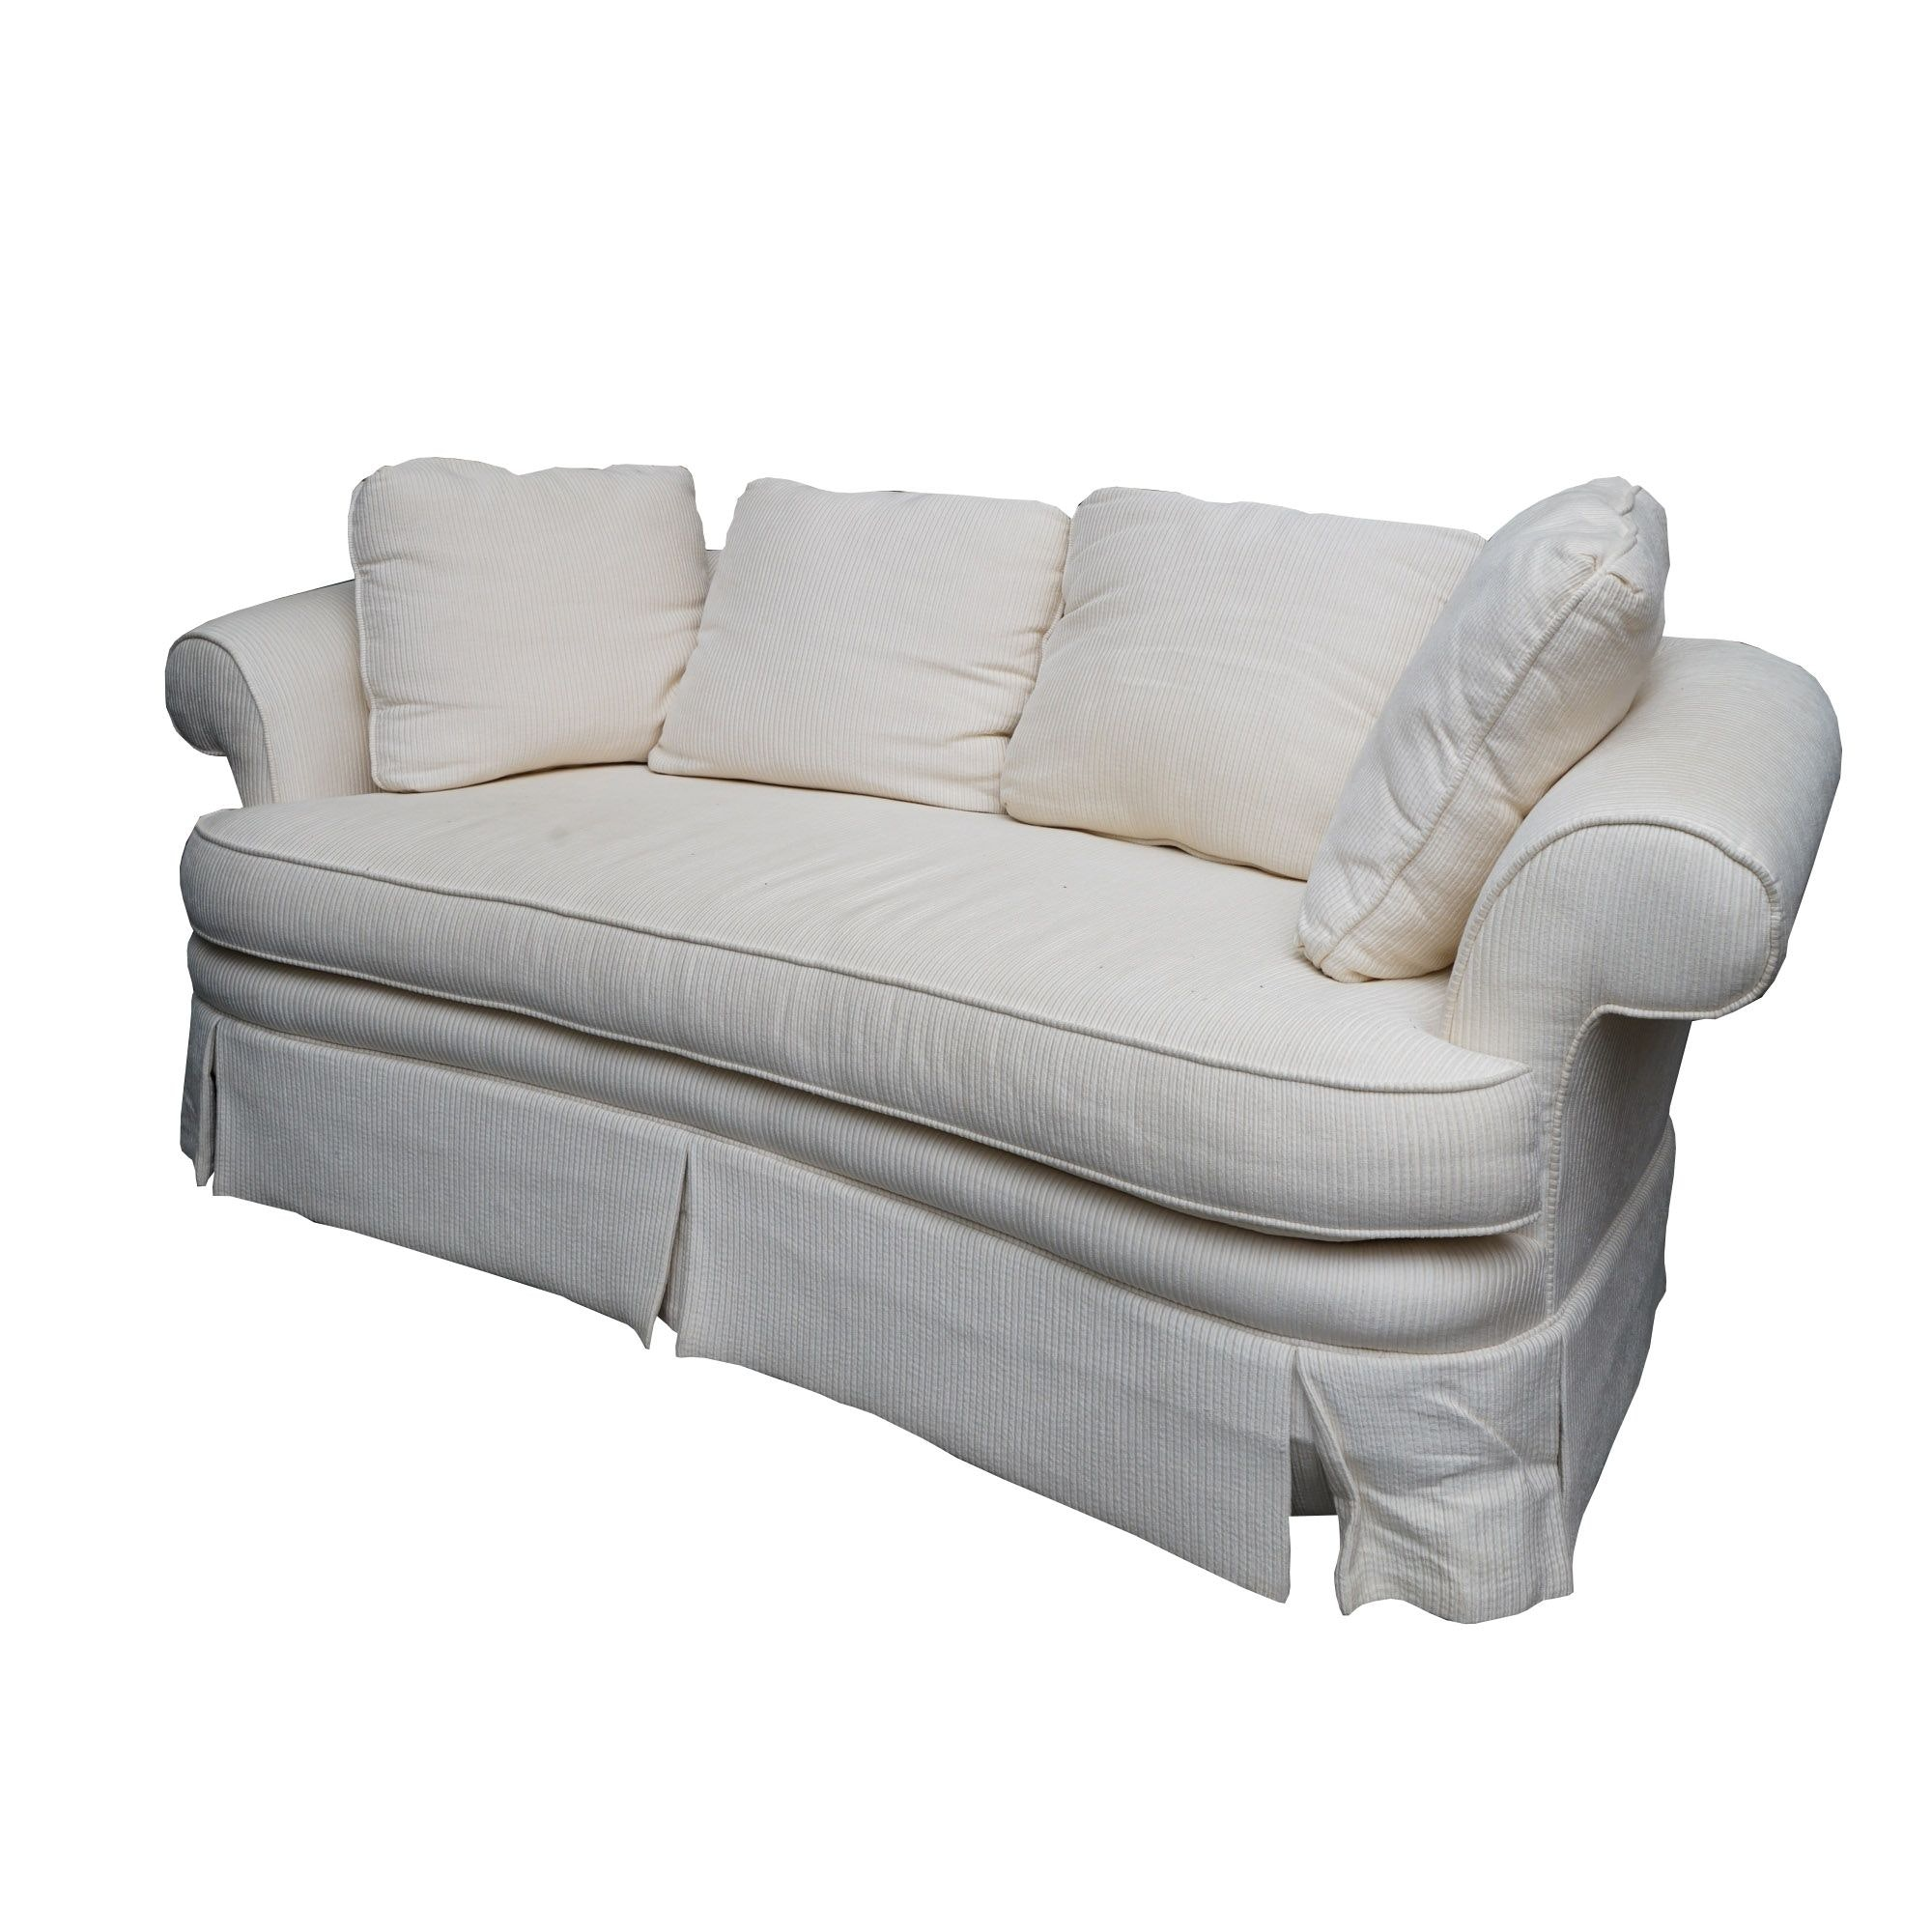 White Upholstered Sofa by Taylor-King